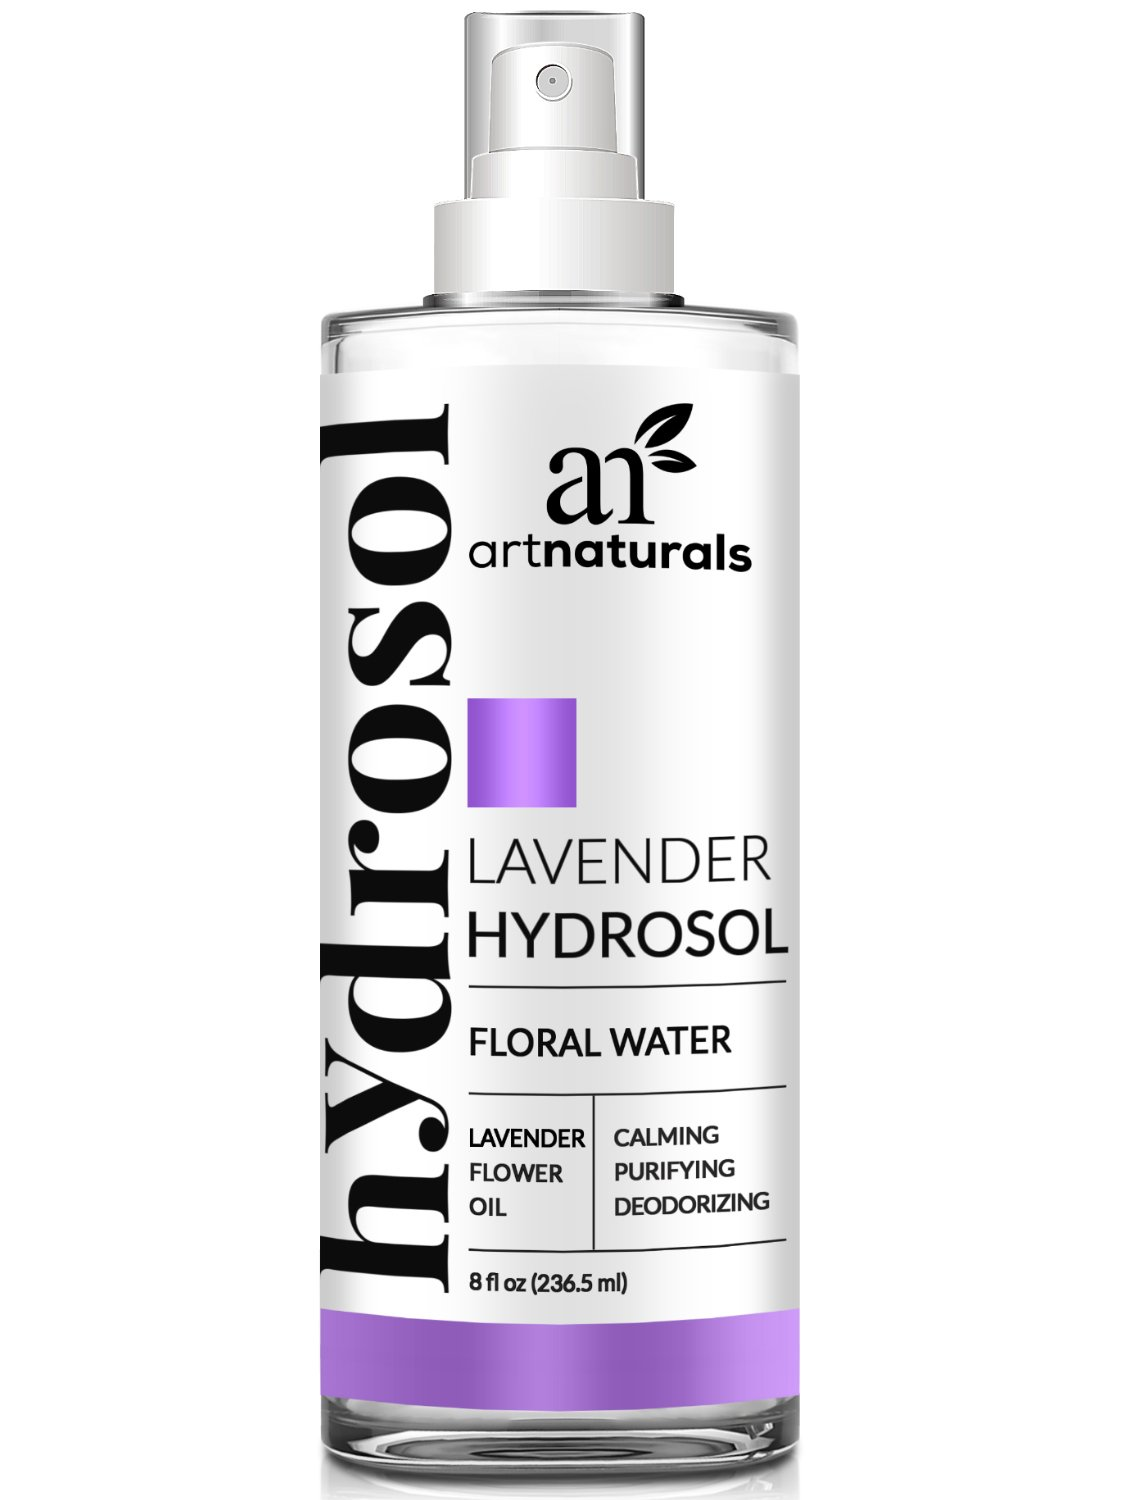 ArtNaturals Lavender Essential Oil Hydrosol Floral Water Spray - (8 Fl Oz/236ml) - Air Freshener, Pillow Mist and Deodorant - All Skin and Body Types